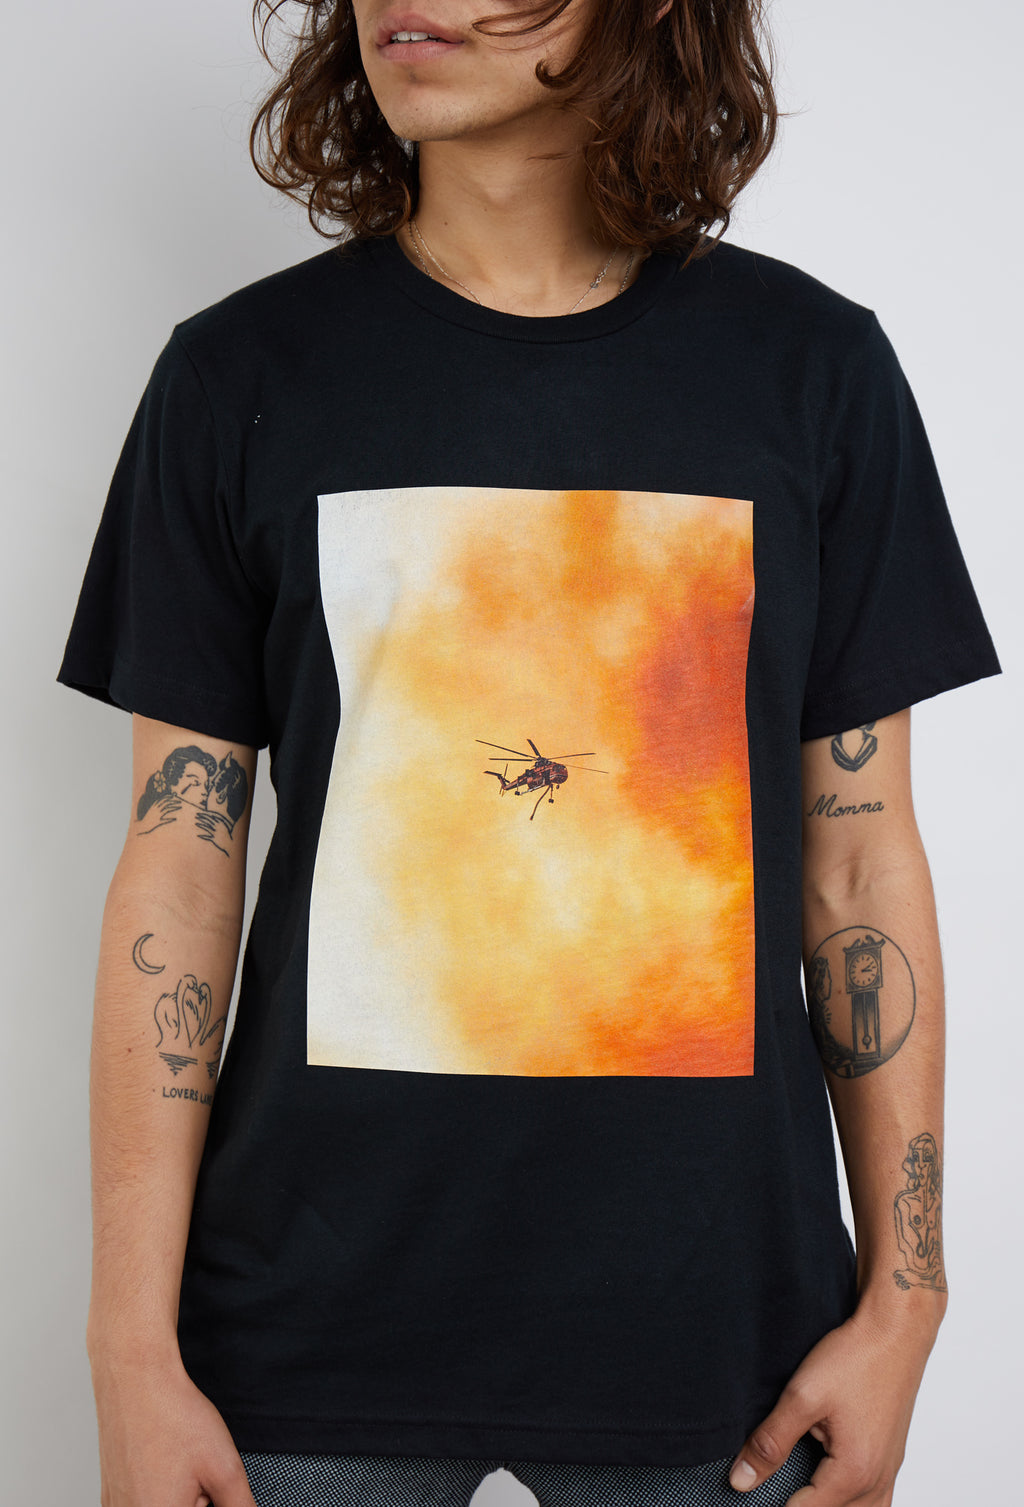 Shades of Black x Kid88 x Shot by Kyle Collaboration California Wildfire T-Shirt